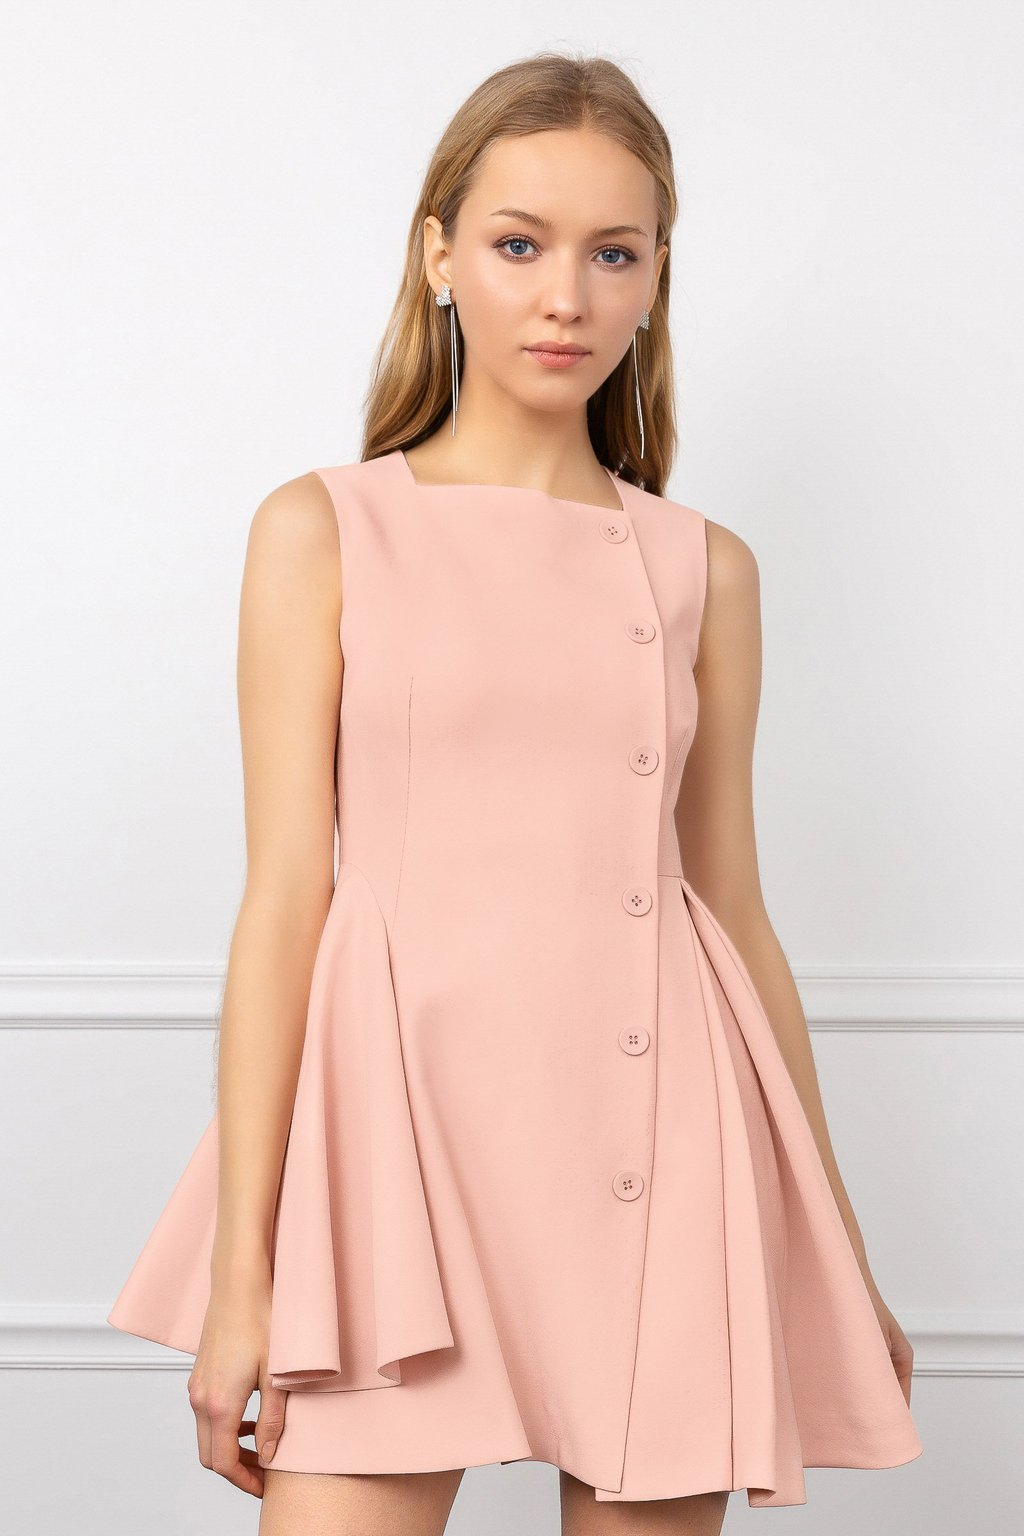 Pink Didi Day Party Dress by J.ING women's fashion